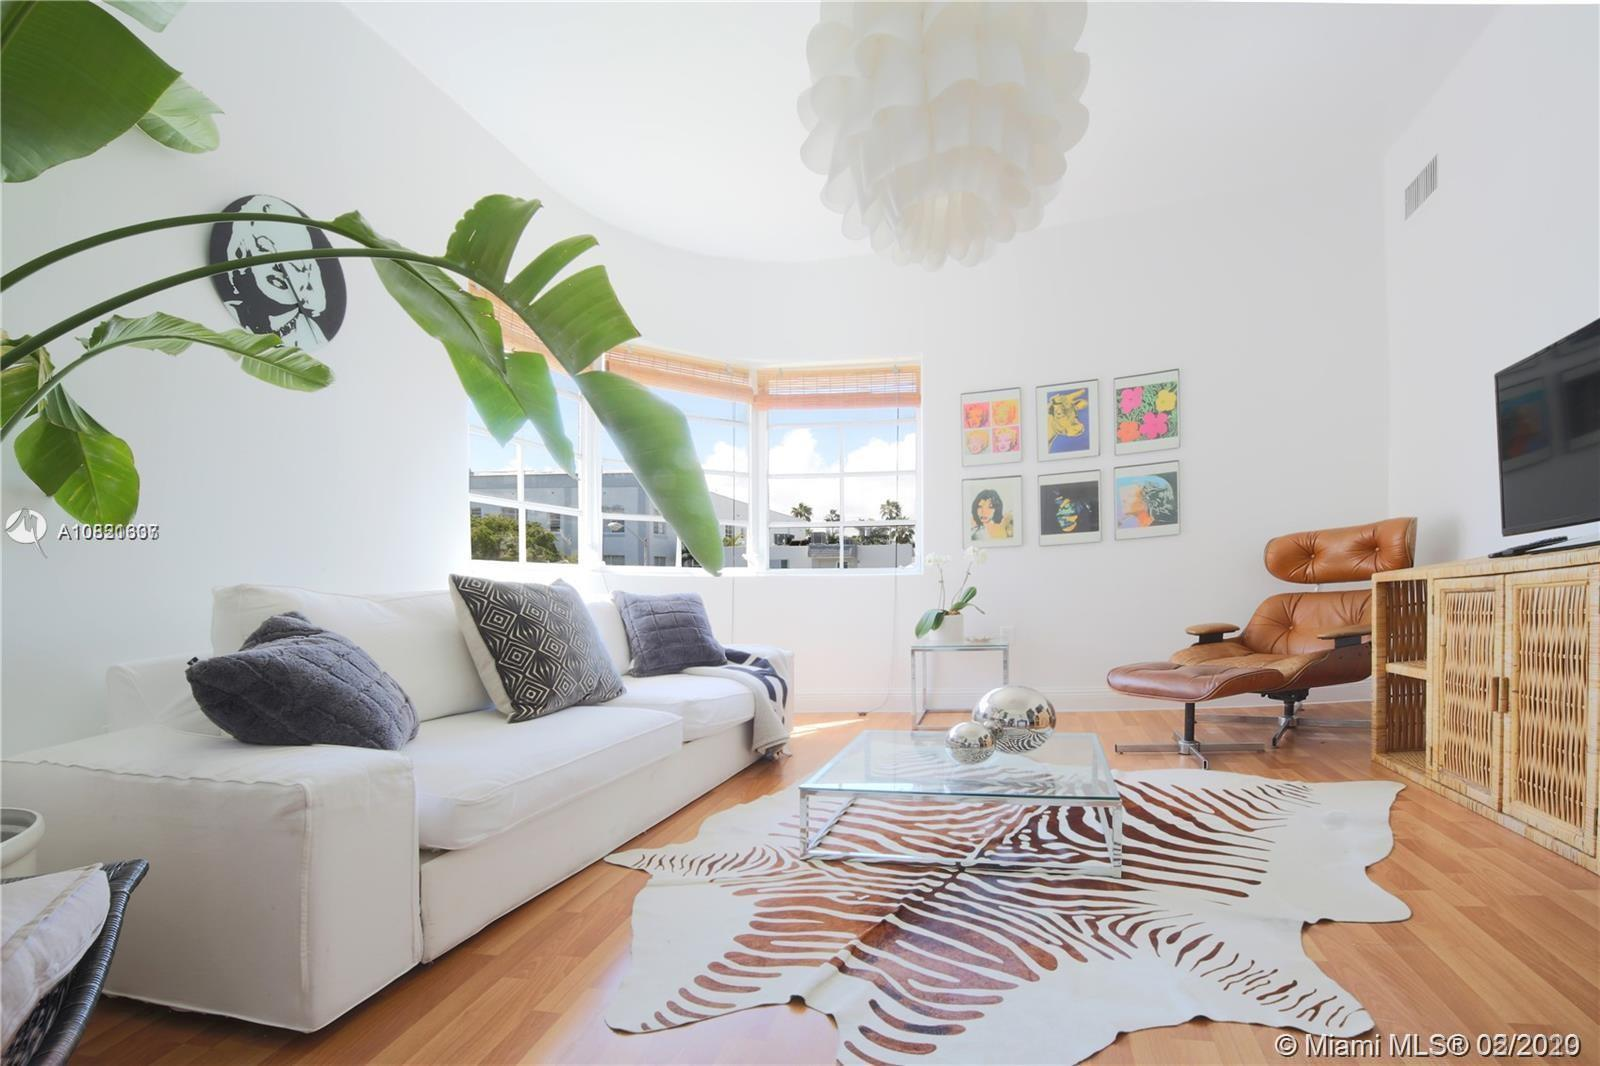 Charming 2nd Floor Deco Condo Steps to Beach. Large 1 bedroom with lots of light and nice Deco round